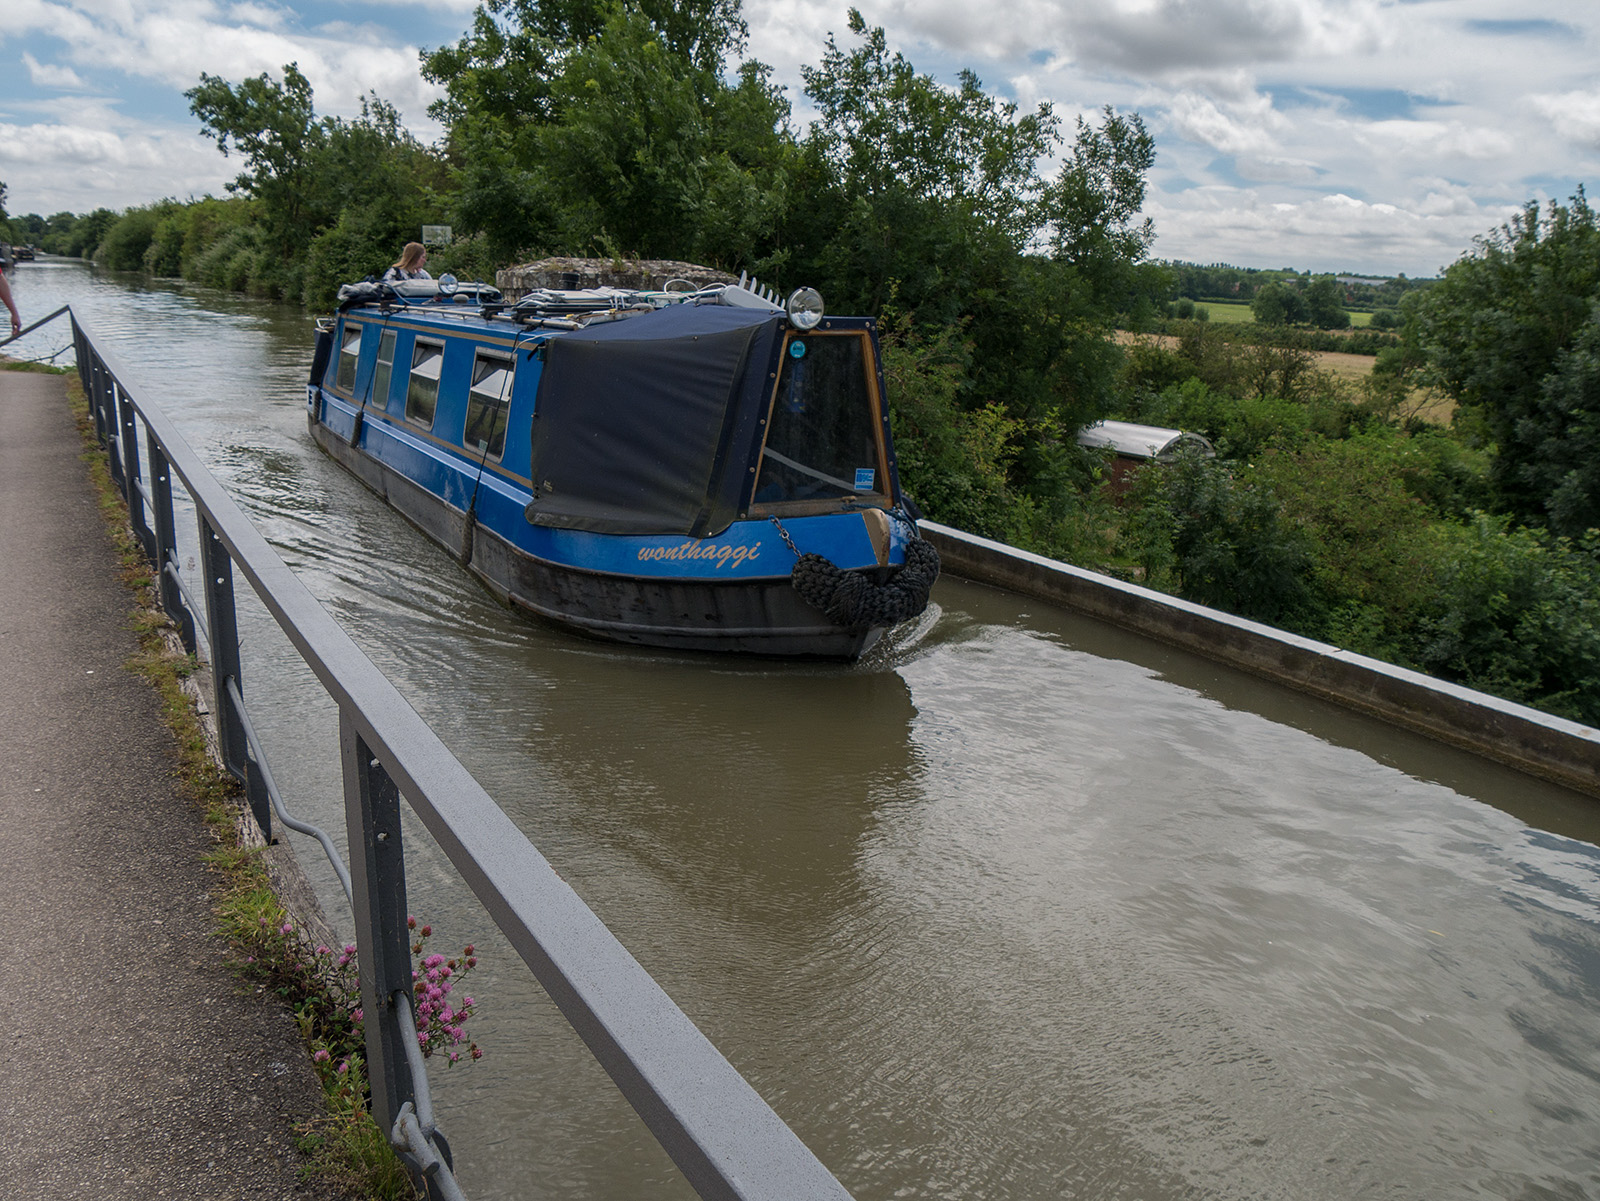 Boat crossing the iron duct aqueduct